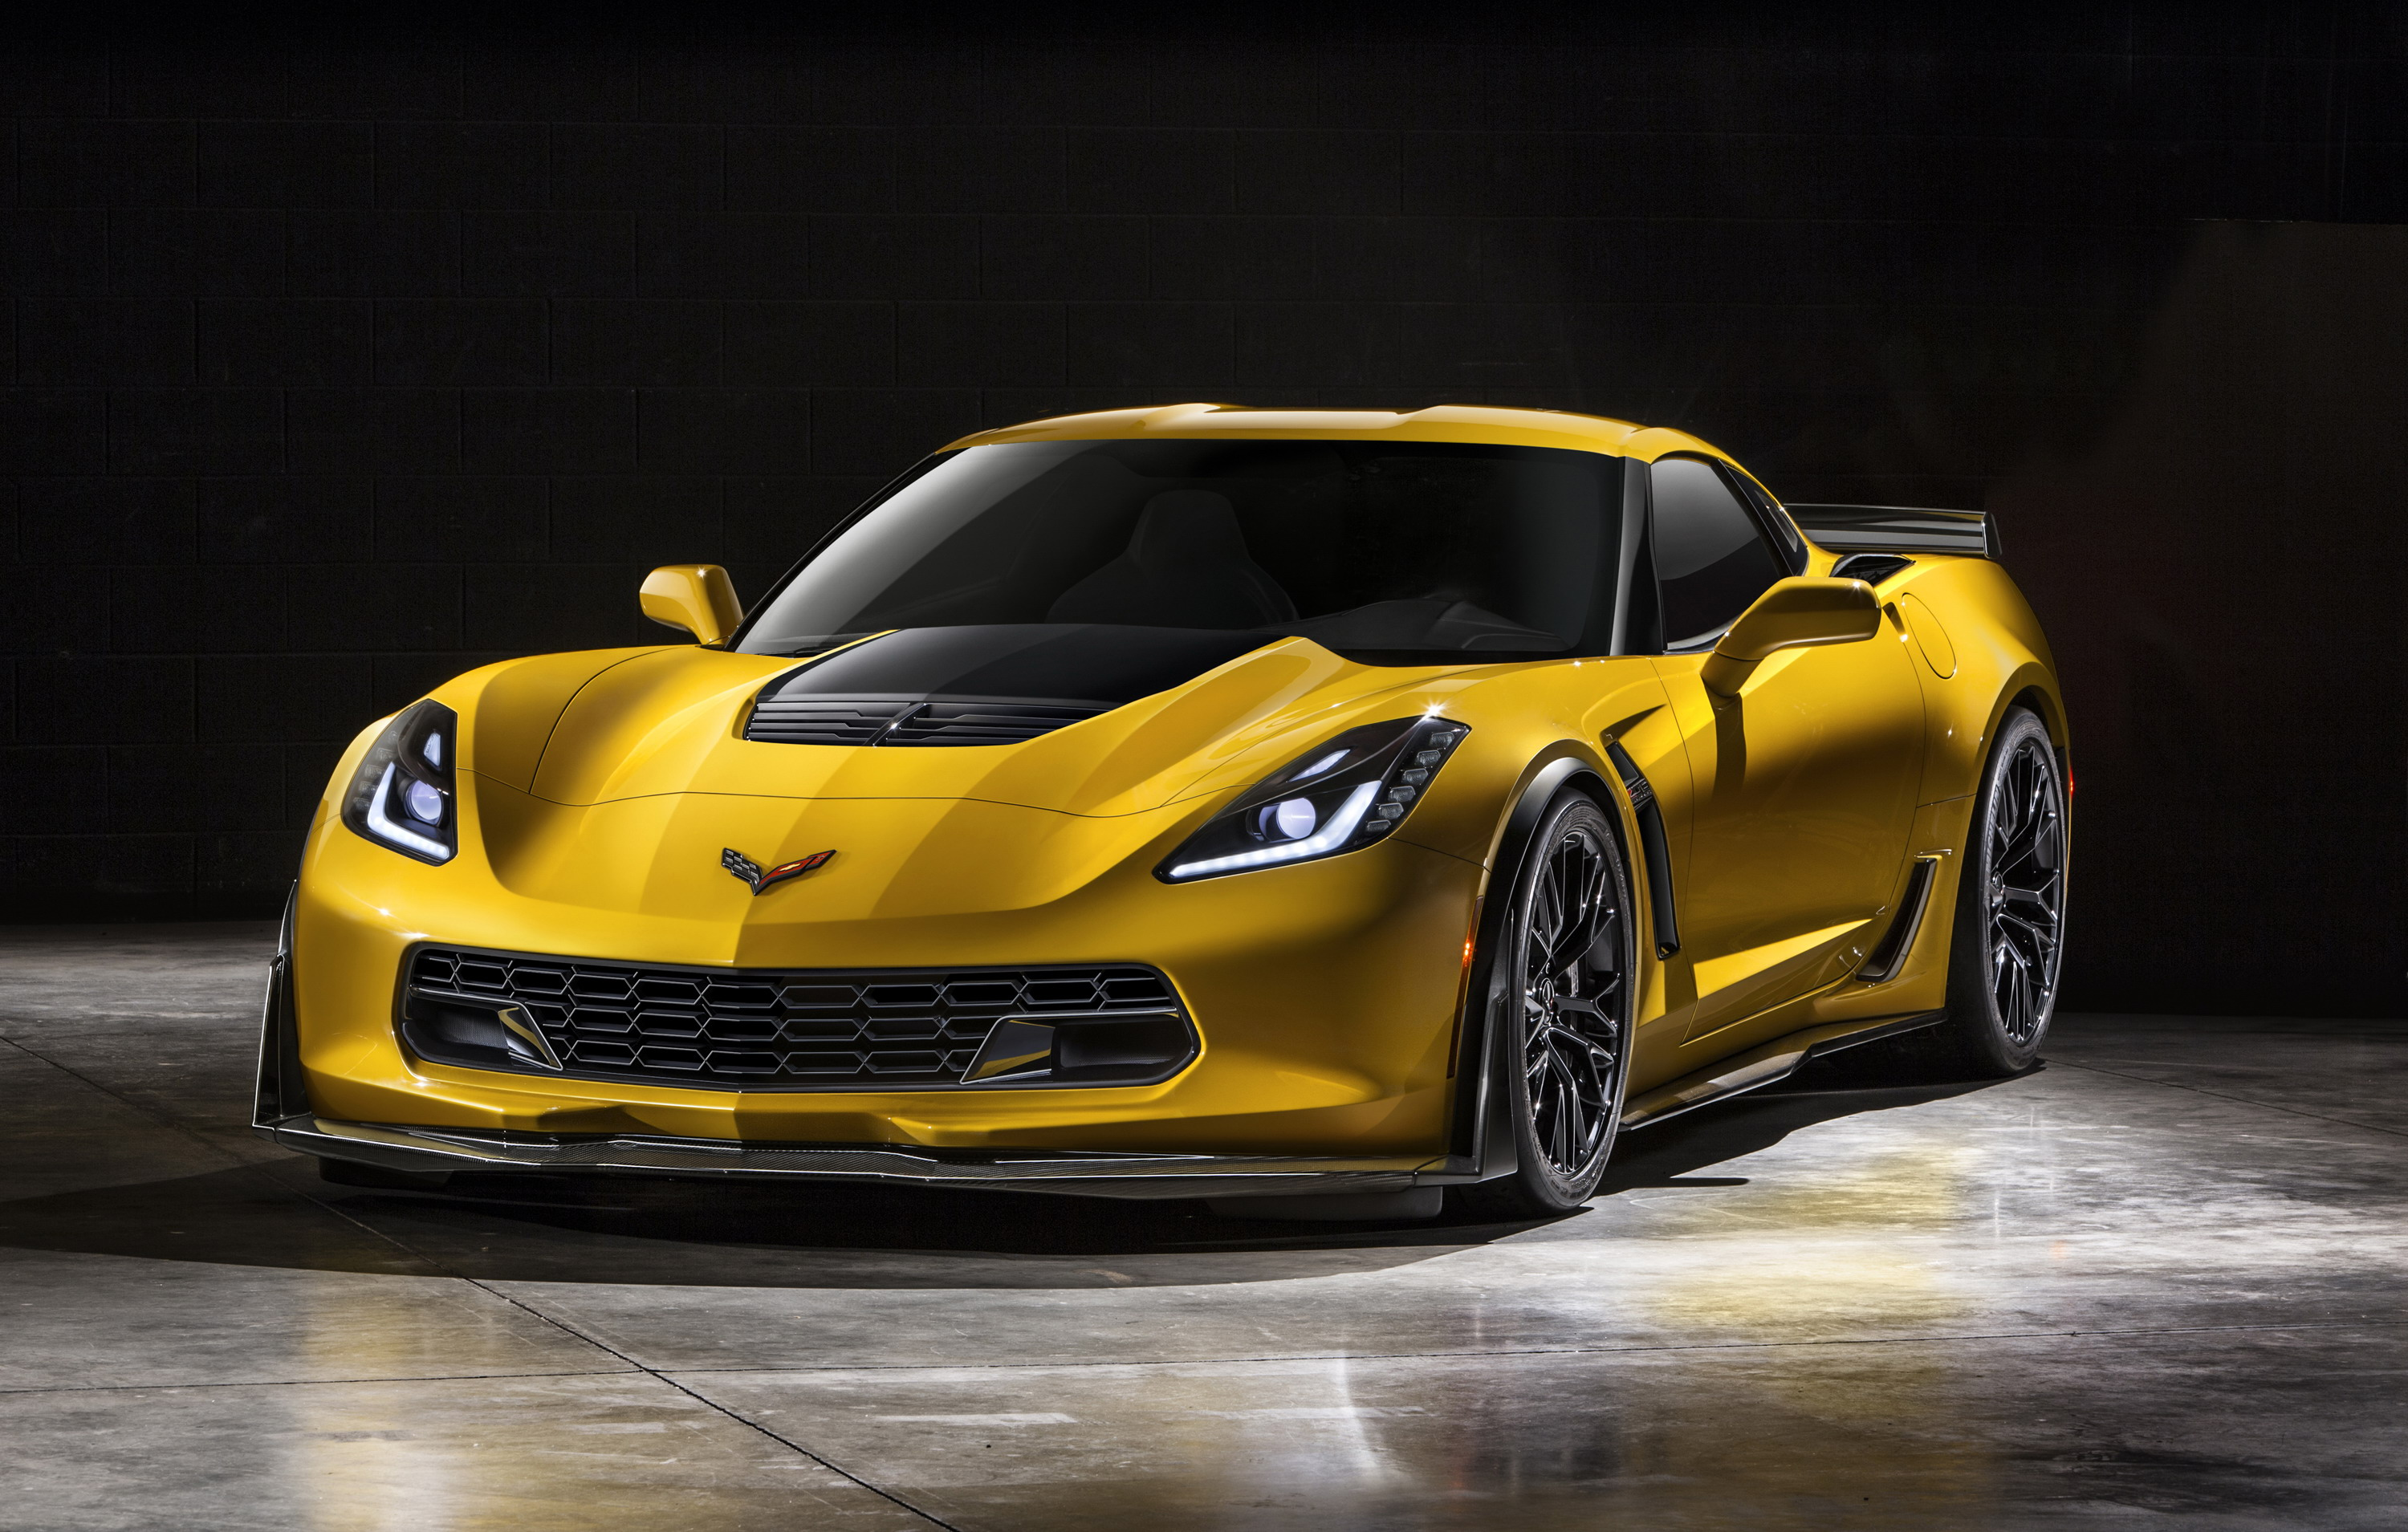 2015 Chevrolet Corvette Z06 Top Speed